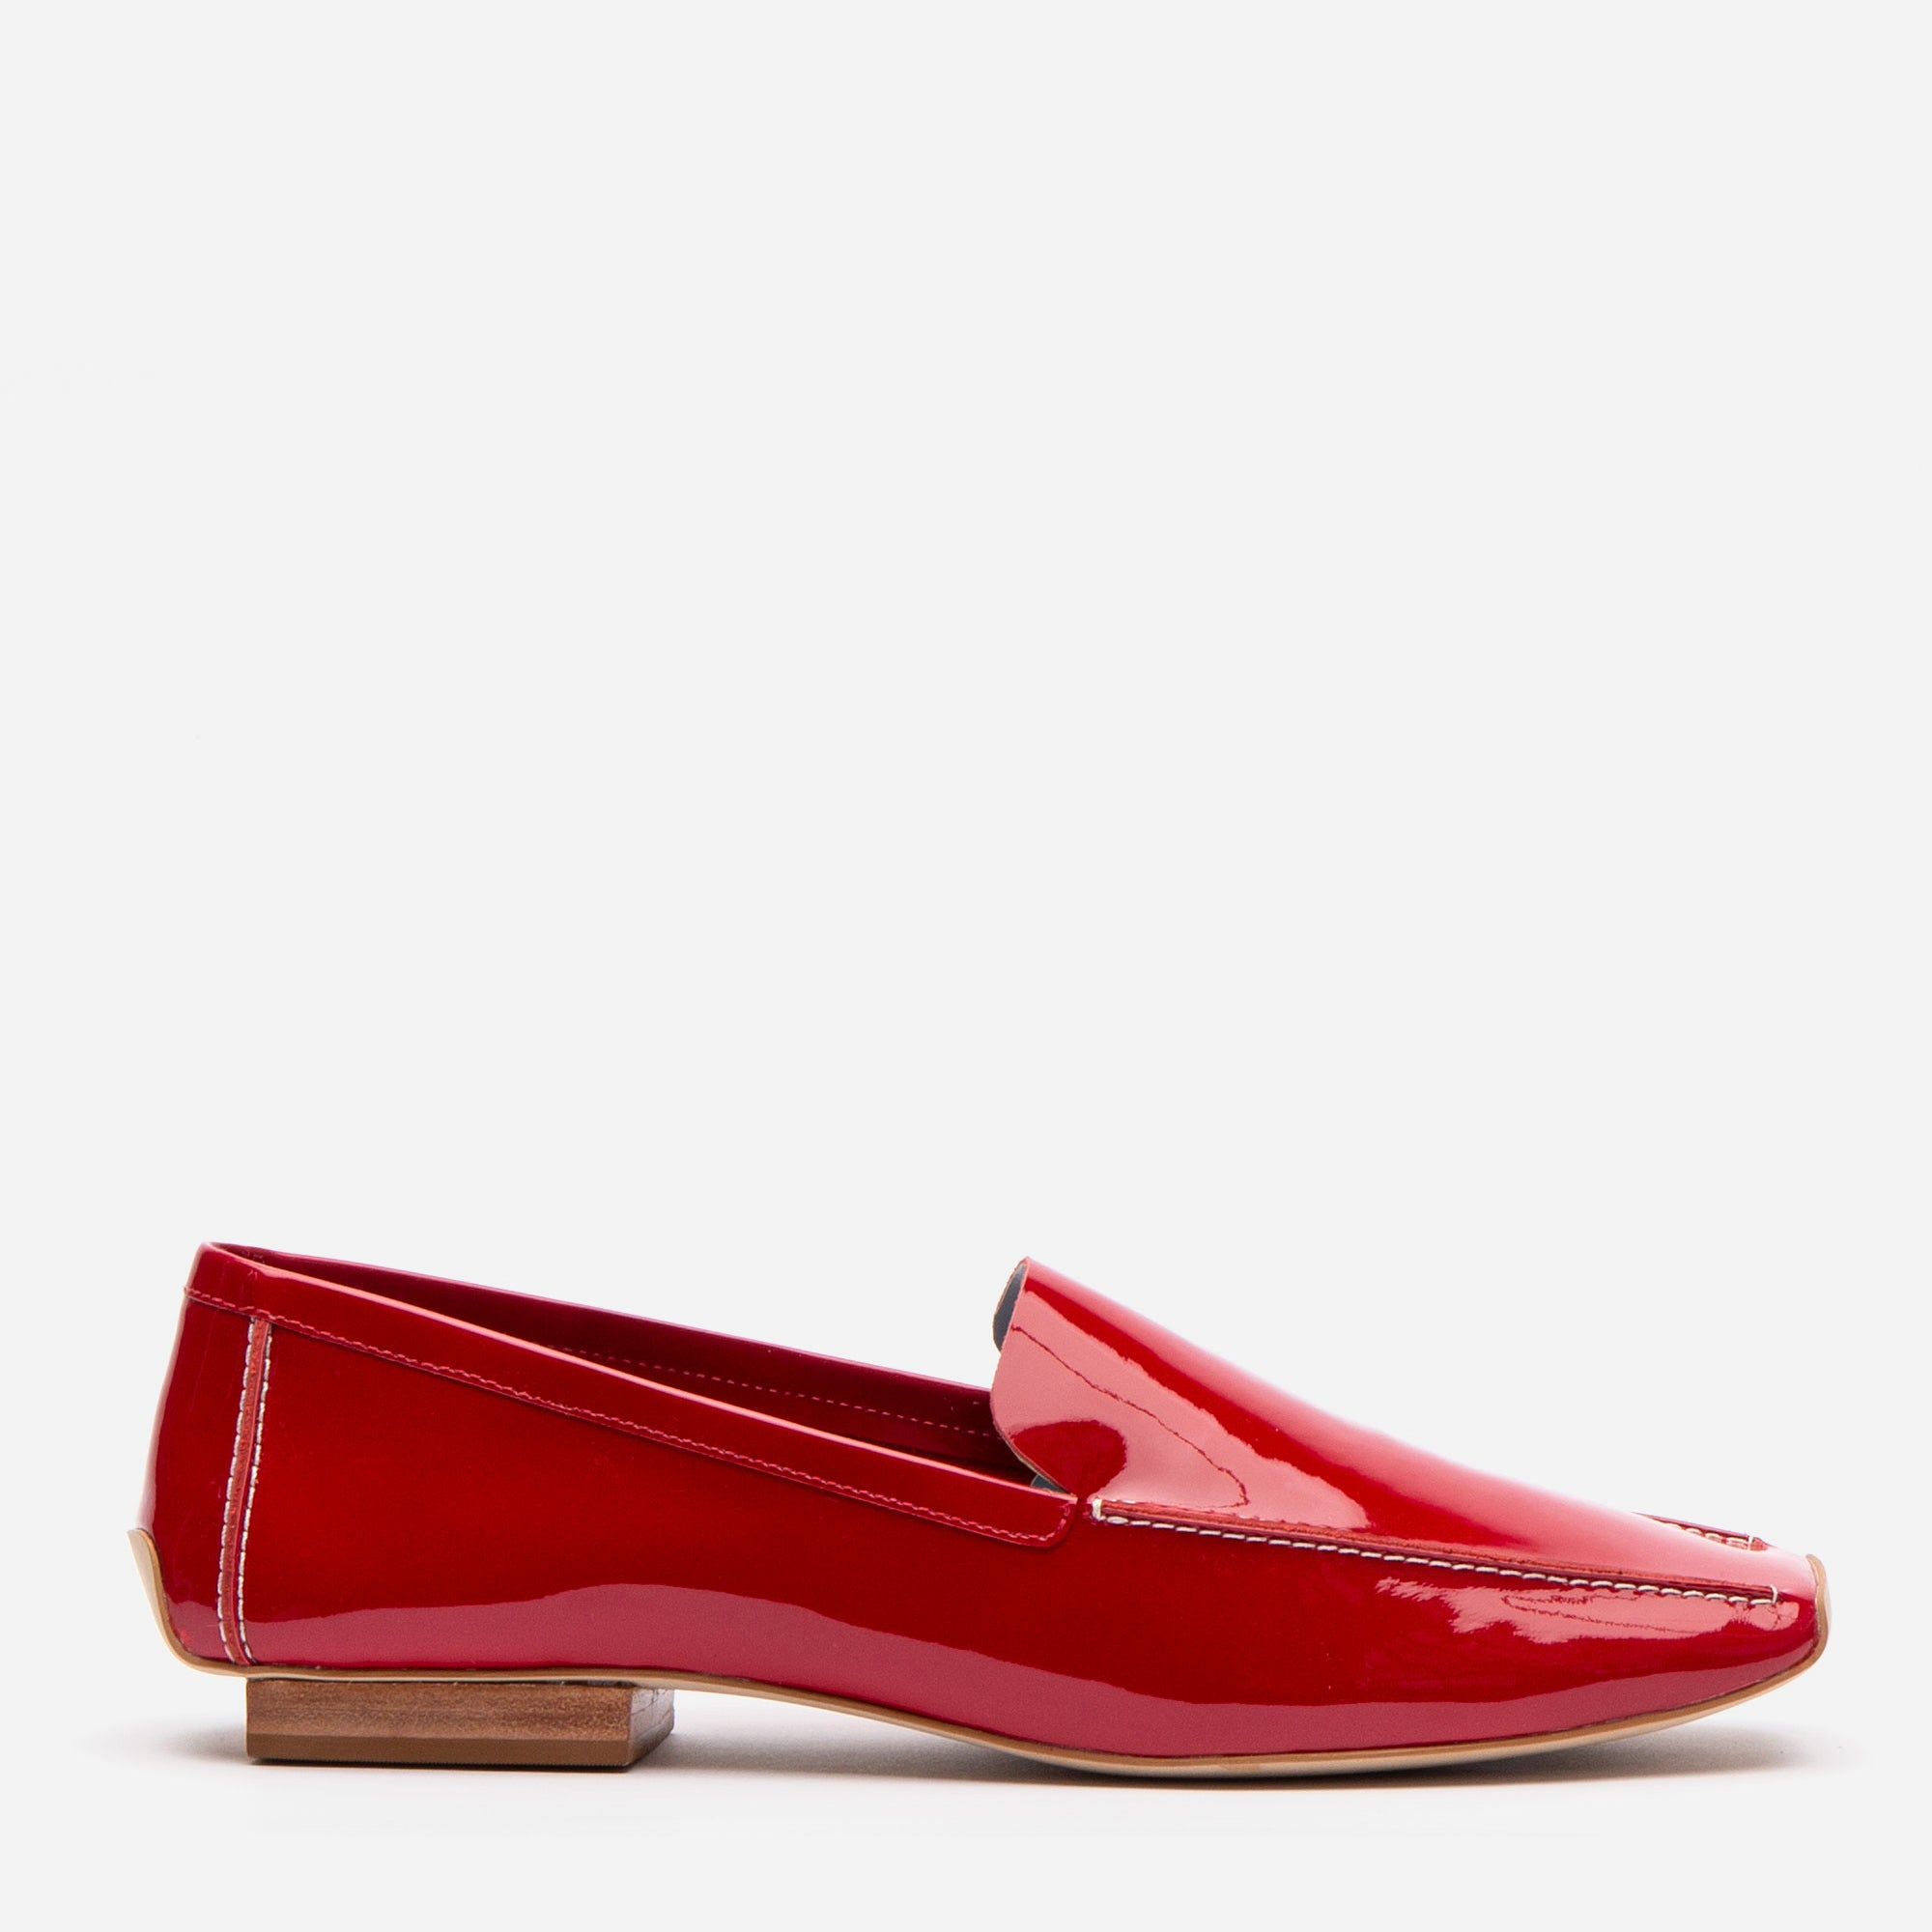 Elyce Loafer Soft Patent Red